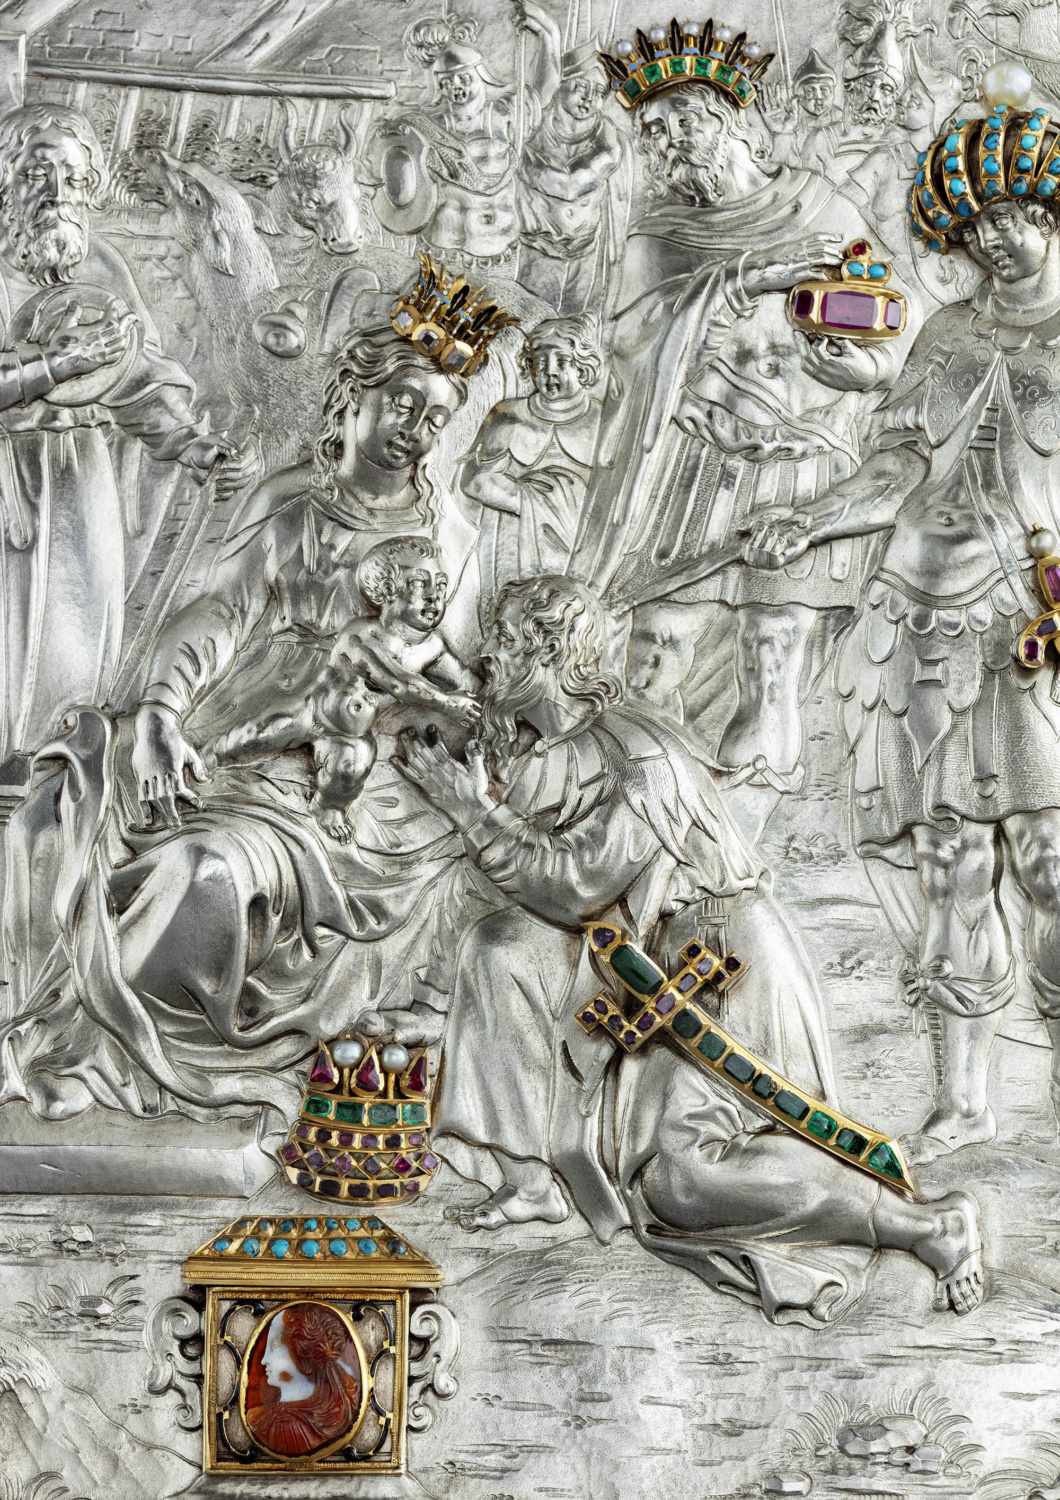 Silver relief enhanced with gemstones - Galerie Kugel